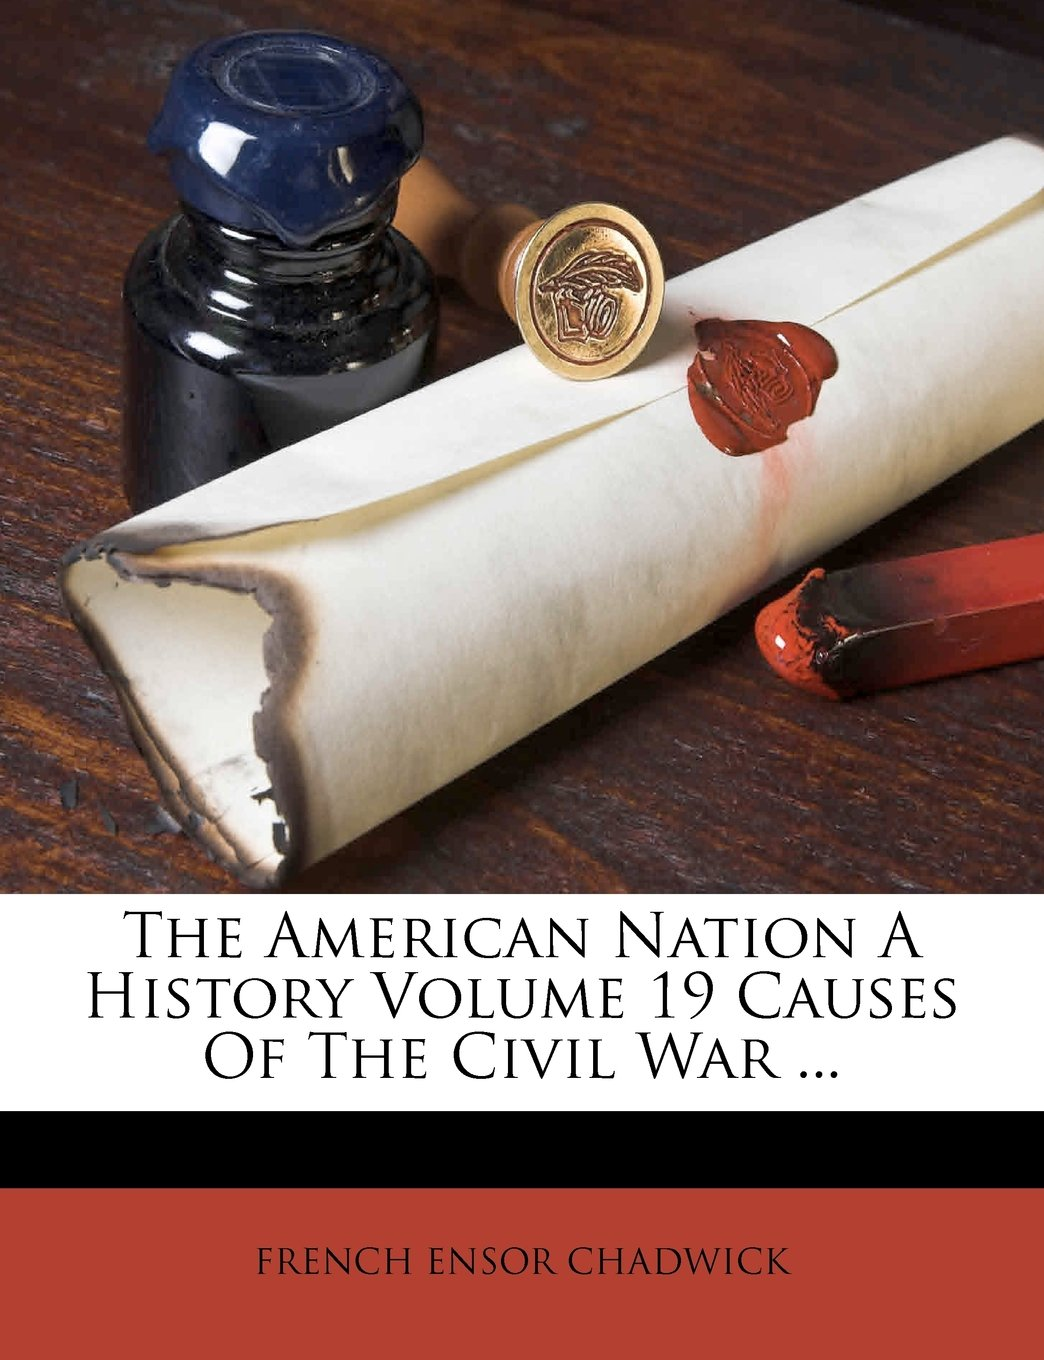 The American Nation A History Volume 19 Causes Of The Civil War ... pdf